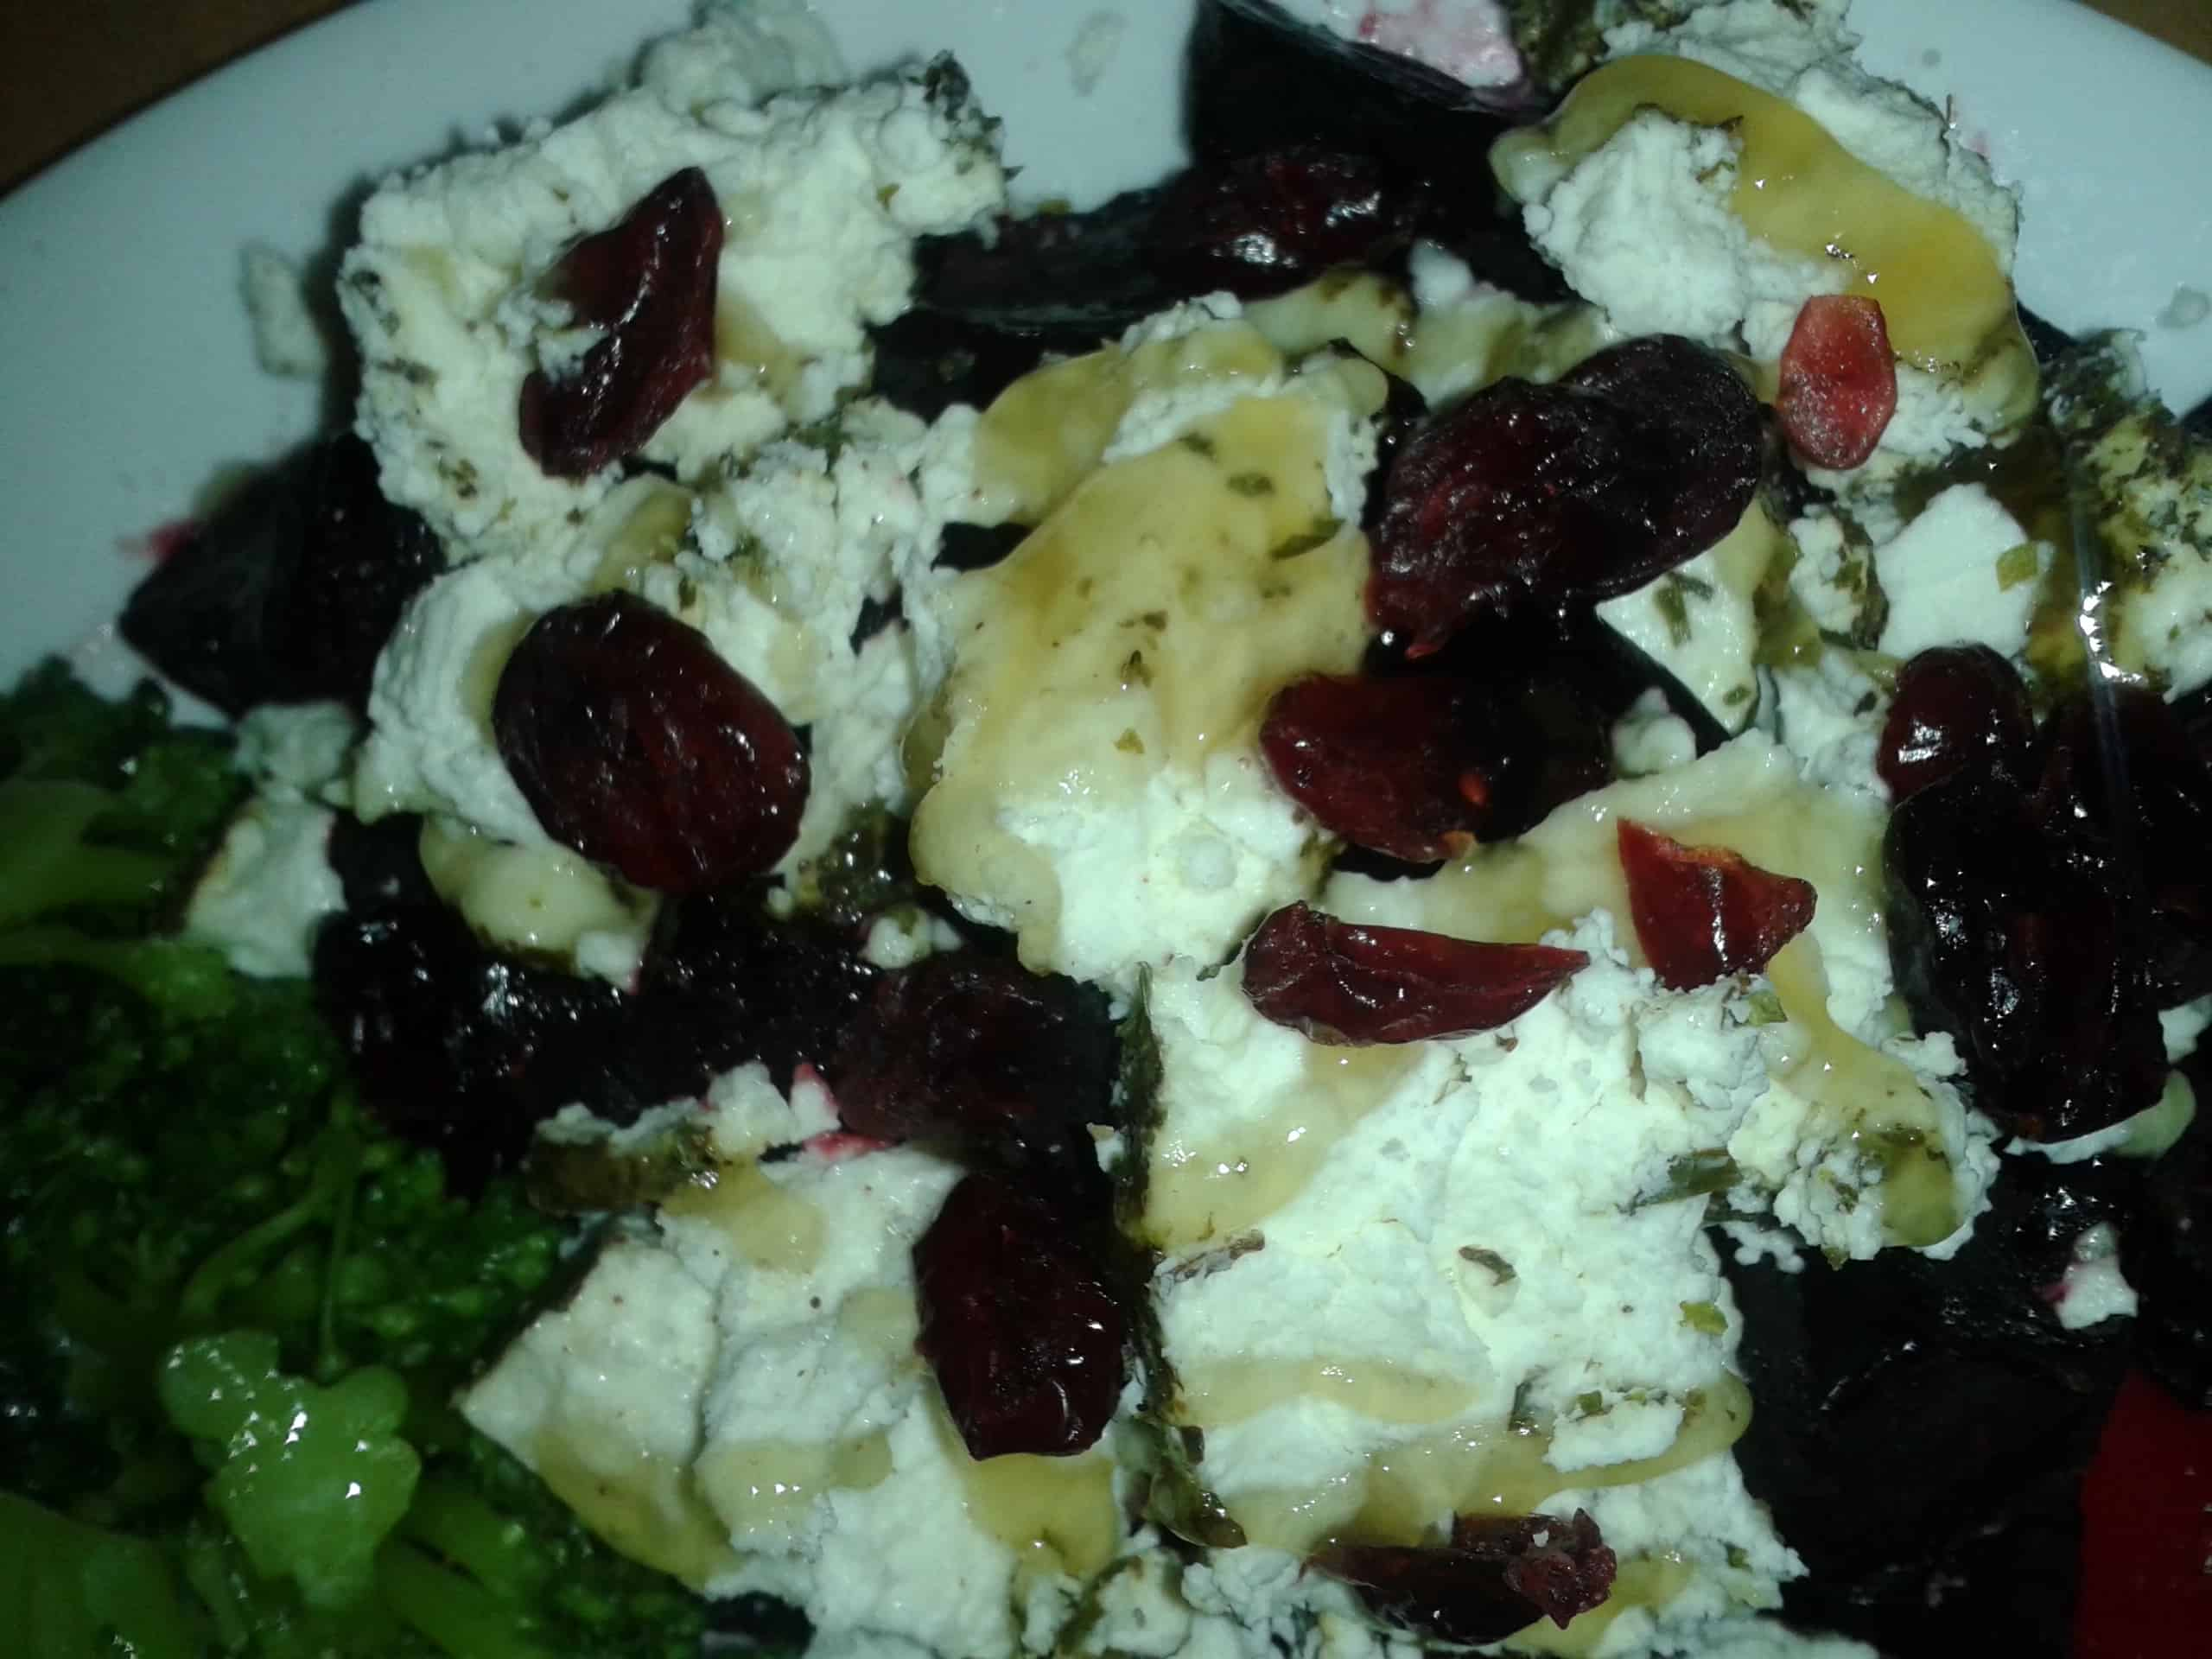 Baked Beets topped with Goat Cheese, Honey and Sunflower Seeds